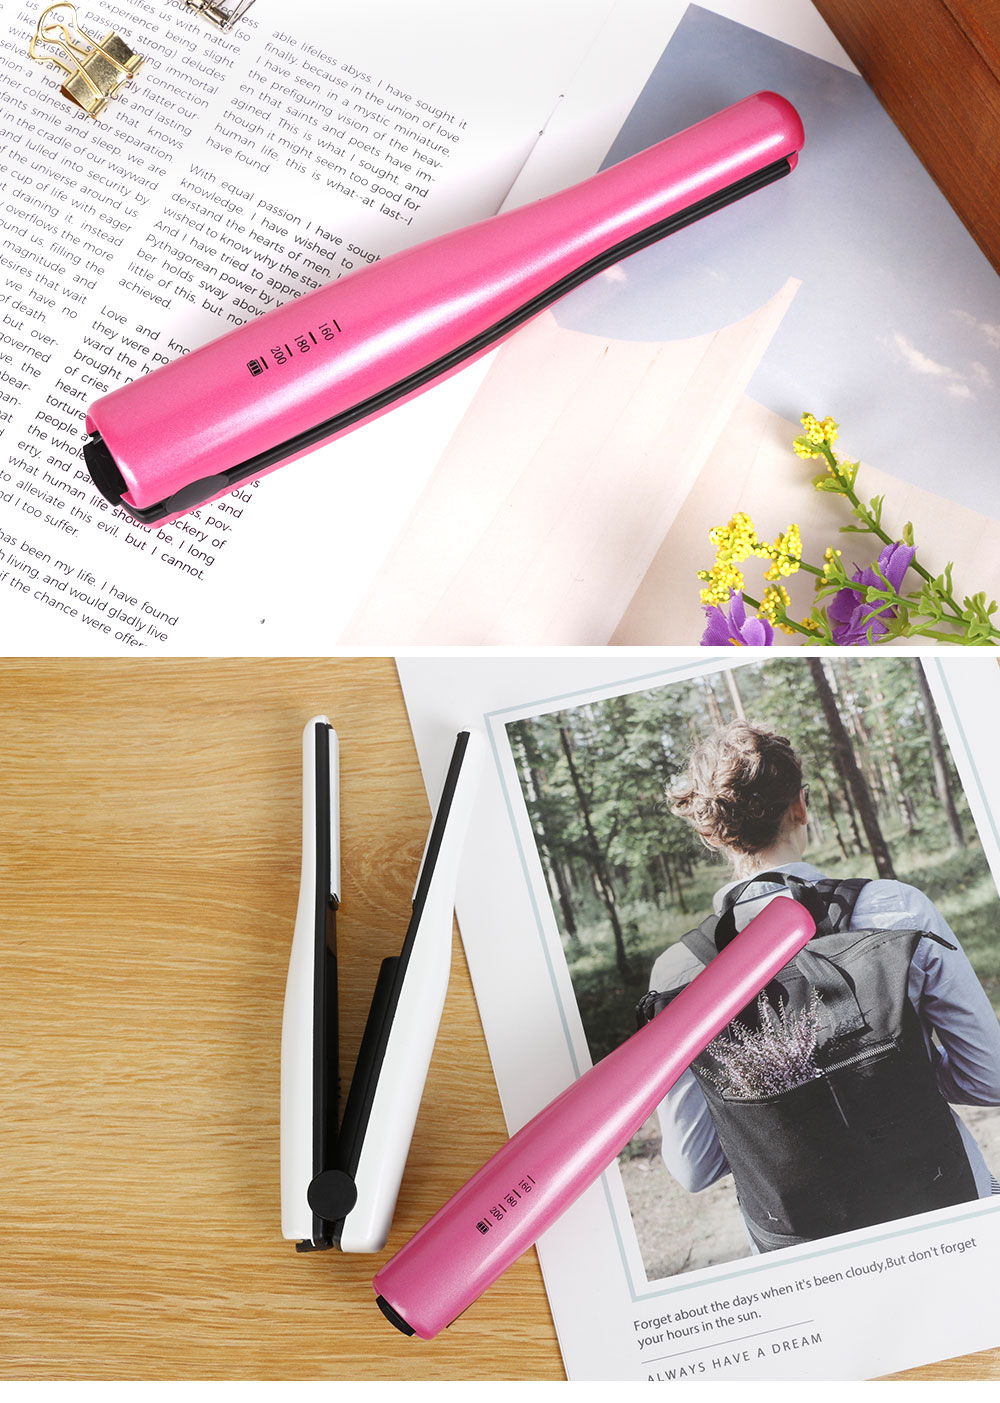 Mini Travel Portable Hair Straightener Curling Iron Cordless USB Charger for Beginner Christmas Gift BLACK FRIDAY SALE 7